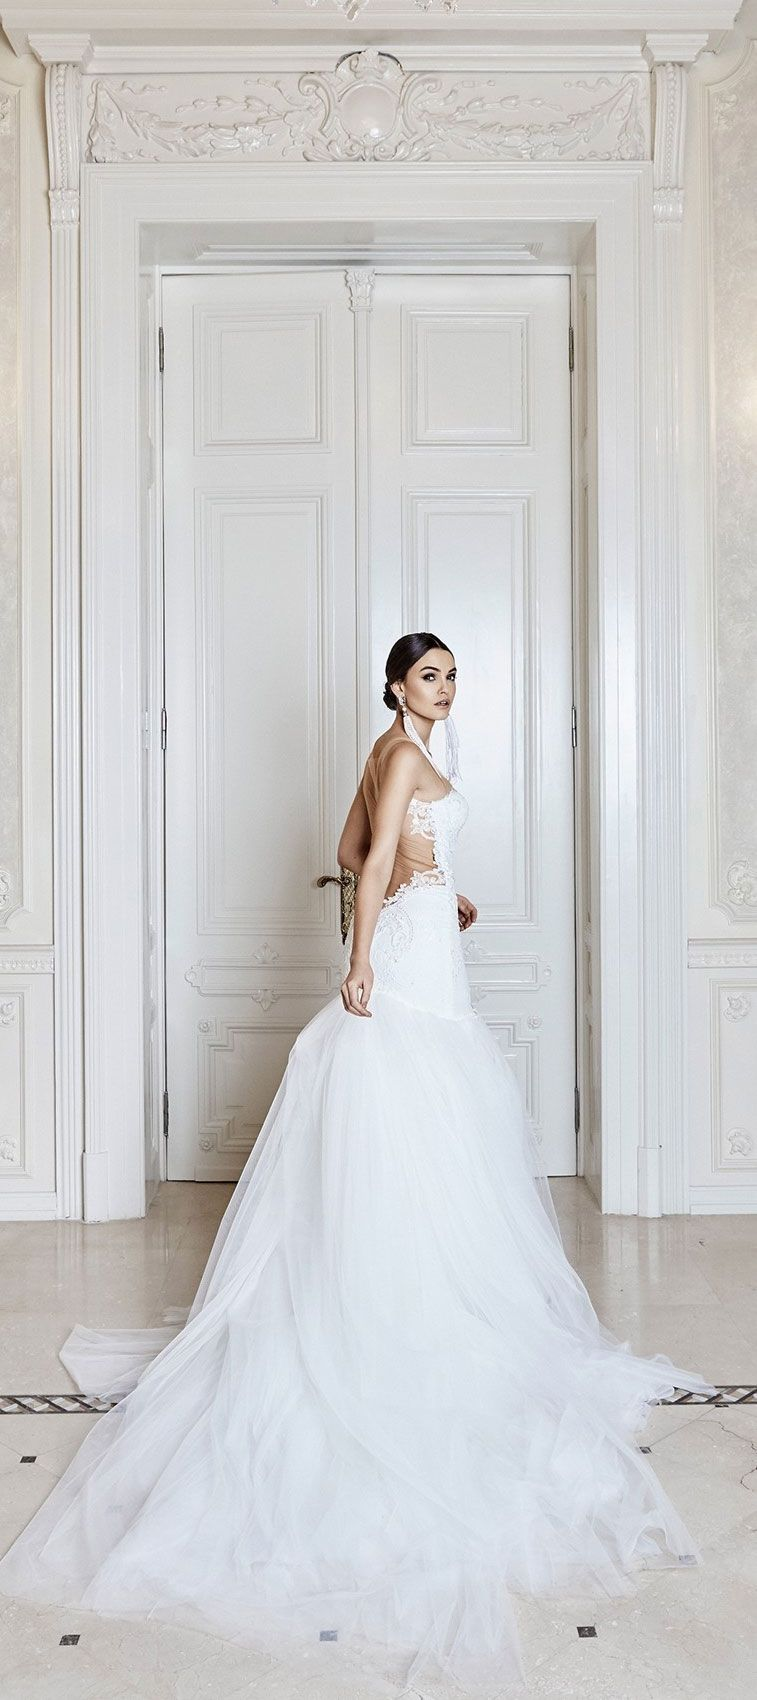 Wedding Dress Inspiration